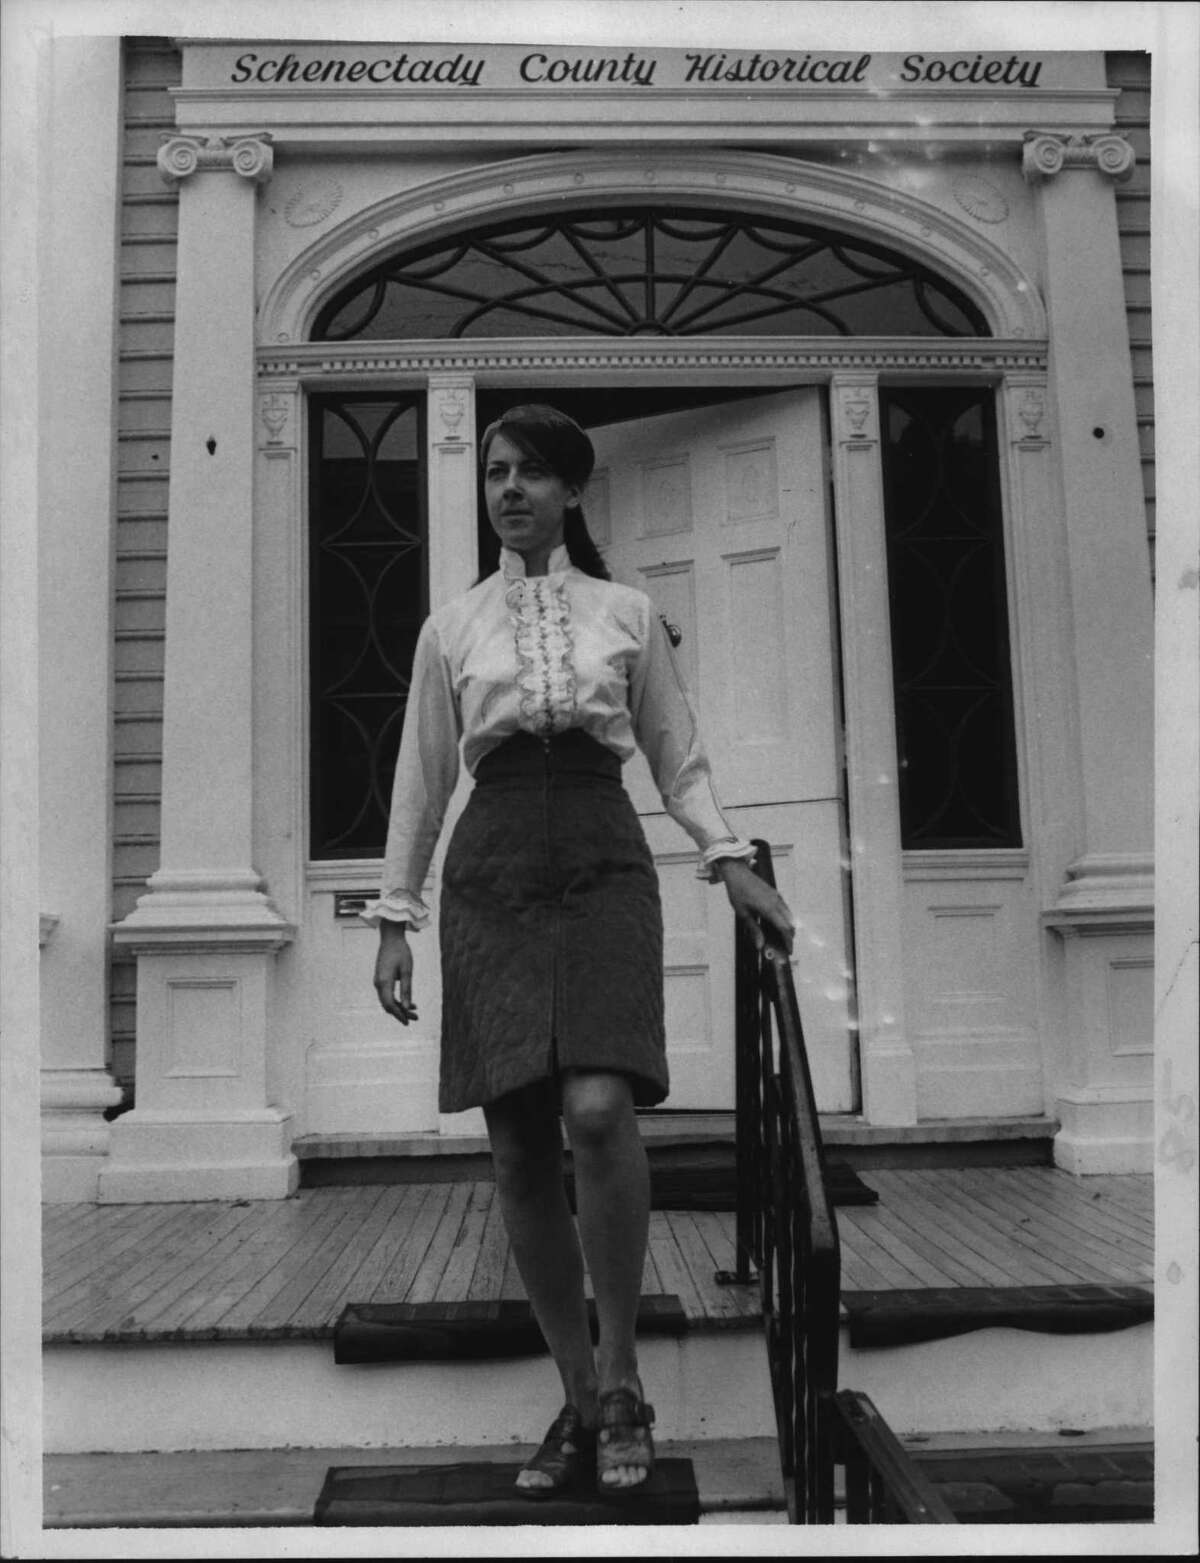 Mary E. Antoine, Schenectady County Historical Society, New York. September 28, 1971 (Paul D. Kniskern, Sr./Times Union Archive)